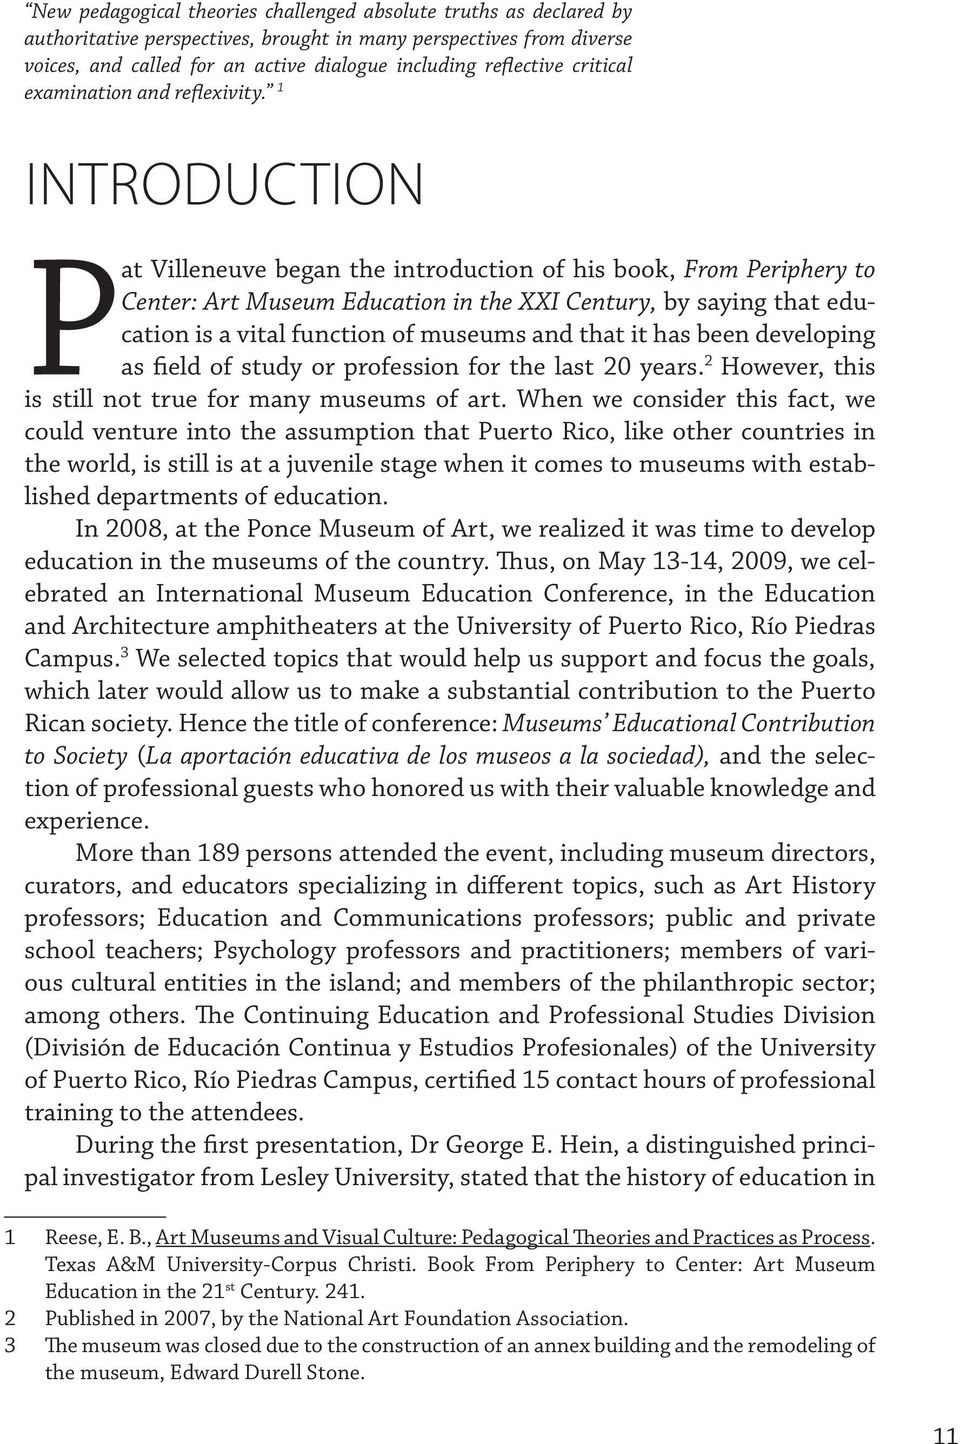 1 Introduction Pat Villeneuve began the introduction of his book, From Periphery to Center: Art Museum Education in the XXI Century, by saying that education is a vital function of museums and that